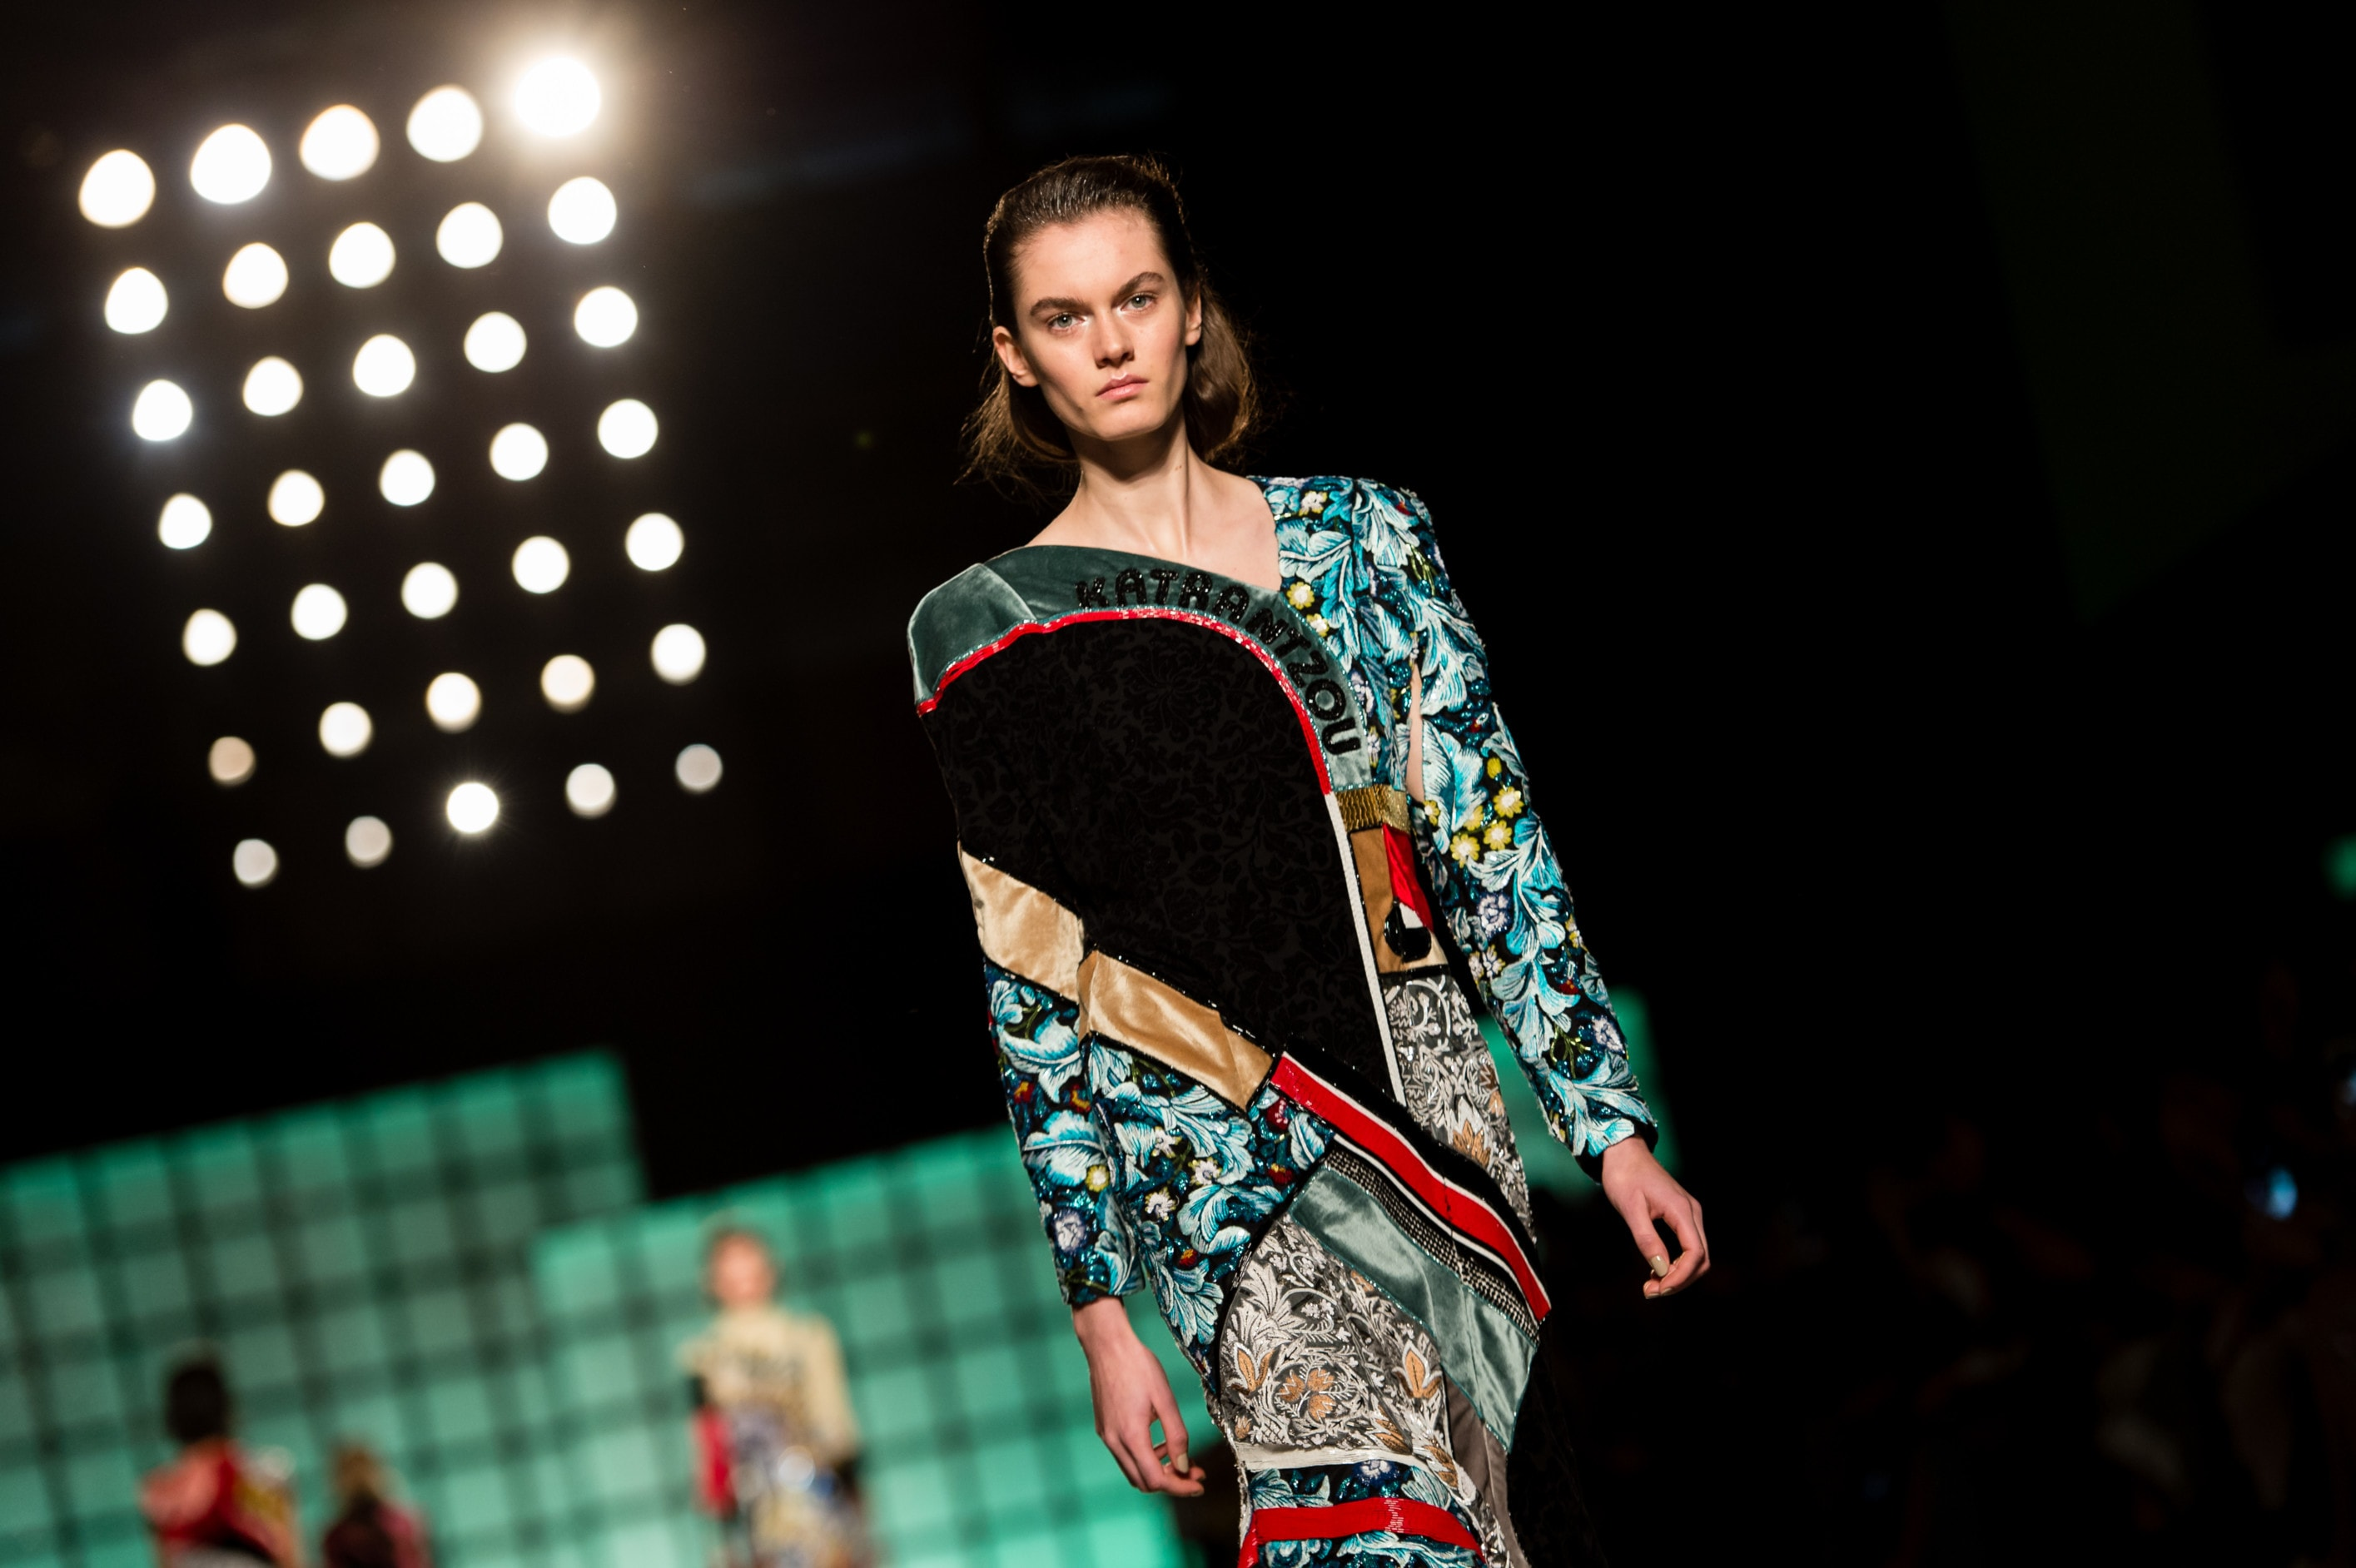 mary-katrantzou-london-fashion-week-freelance-fashion-photographer-richard-isaac-5660